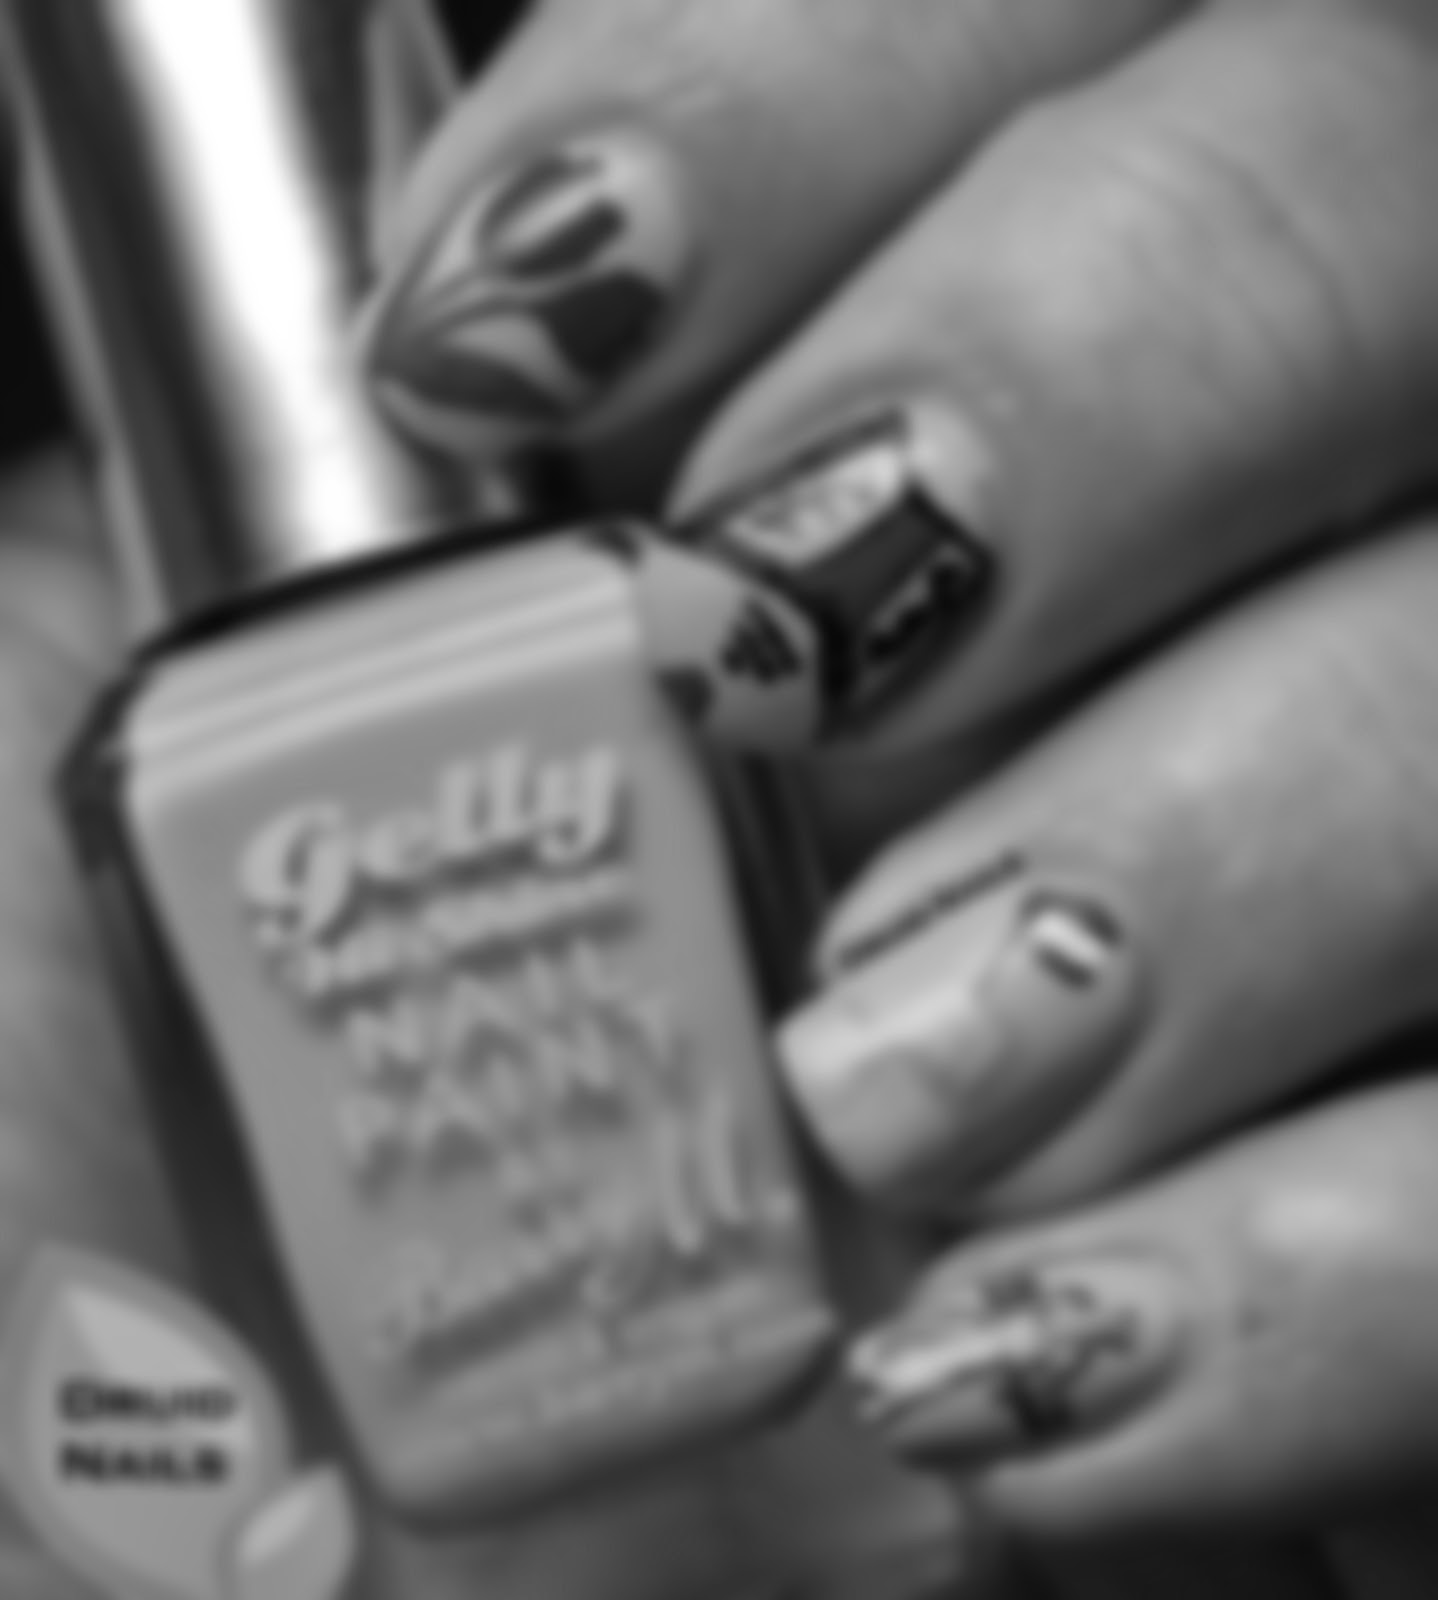 http://fingerfoodnails.blogspot.nl/2014/02/fingerfoods-first-guest-post-brethil-of.html